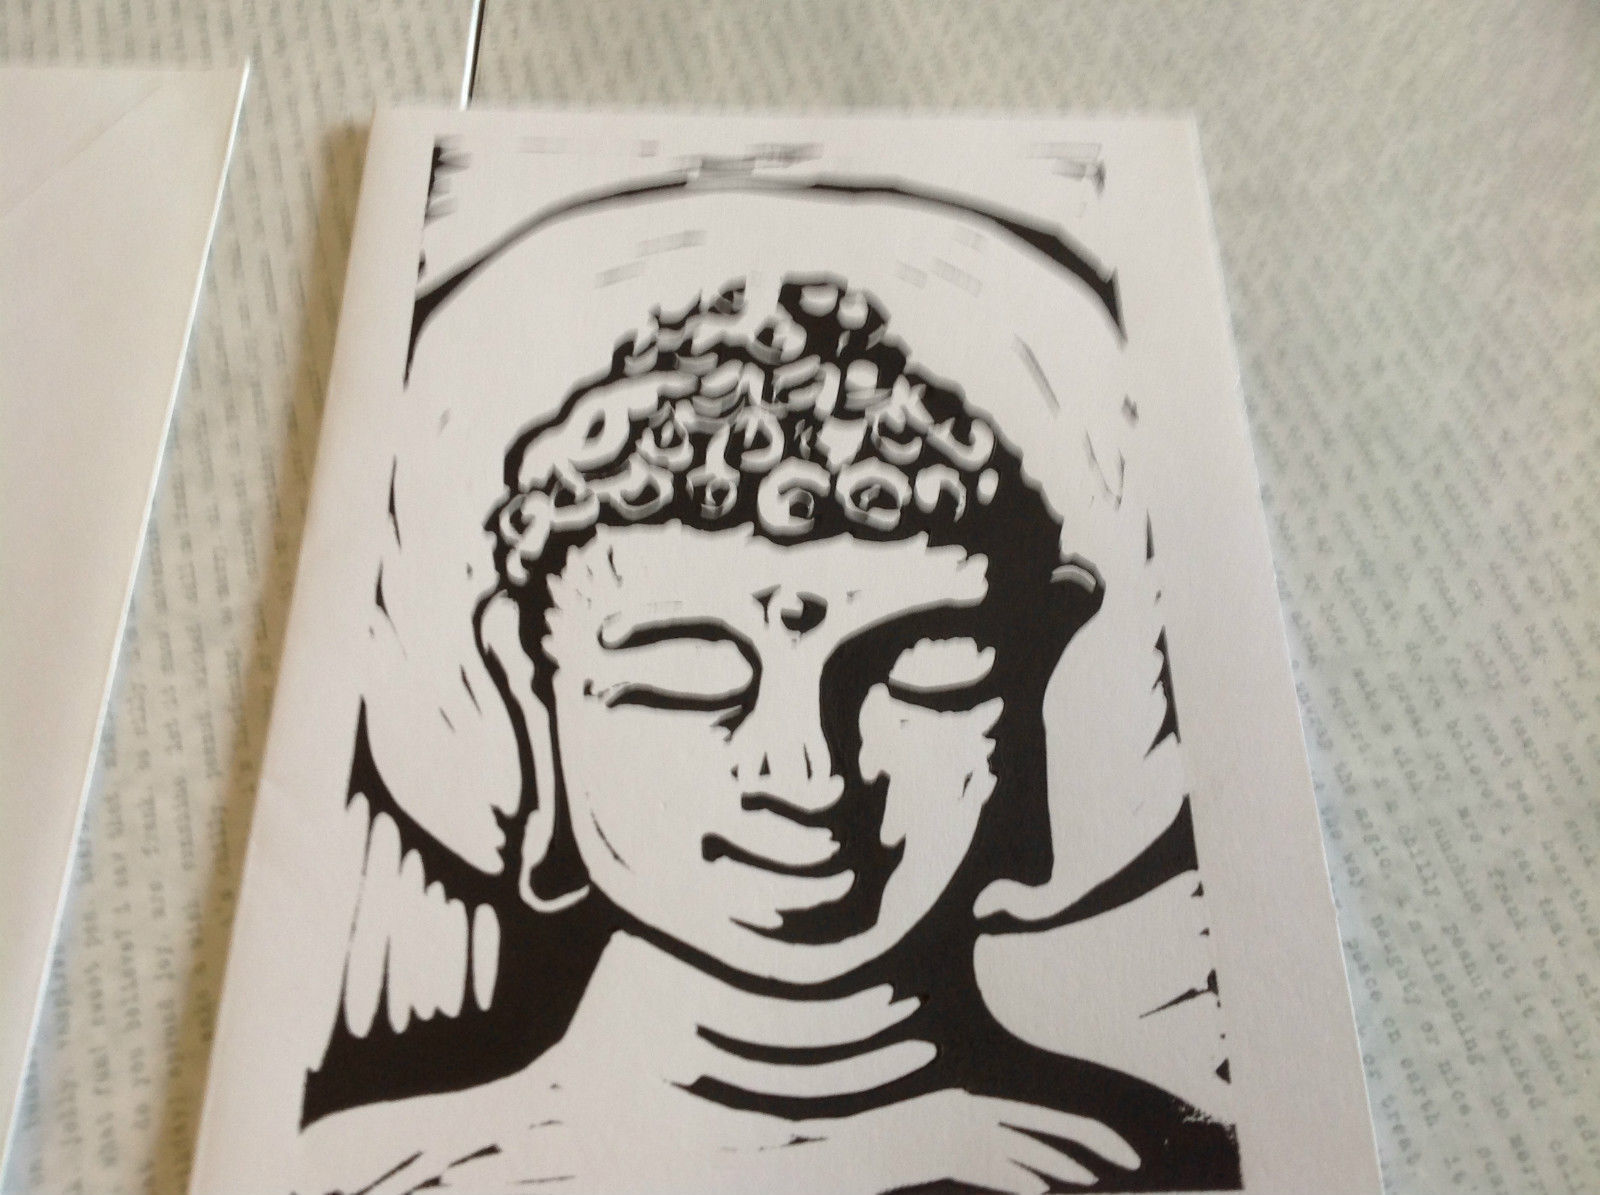 Black and White Buddha Original Wood Block Handmade Greeting Card with Envelope